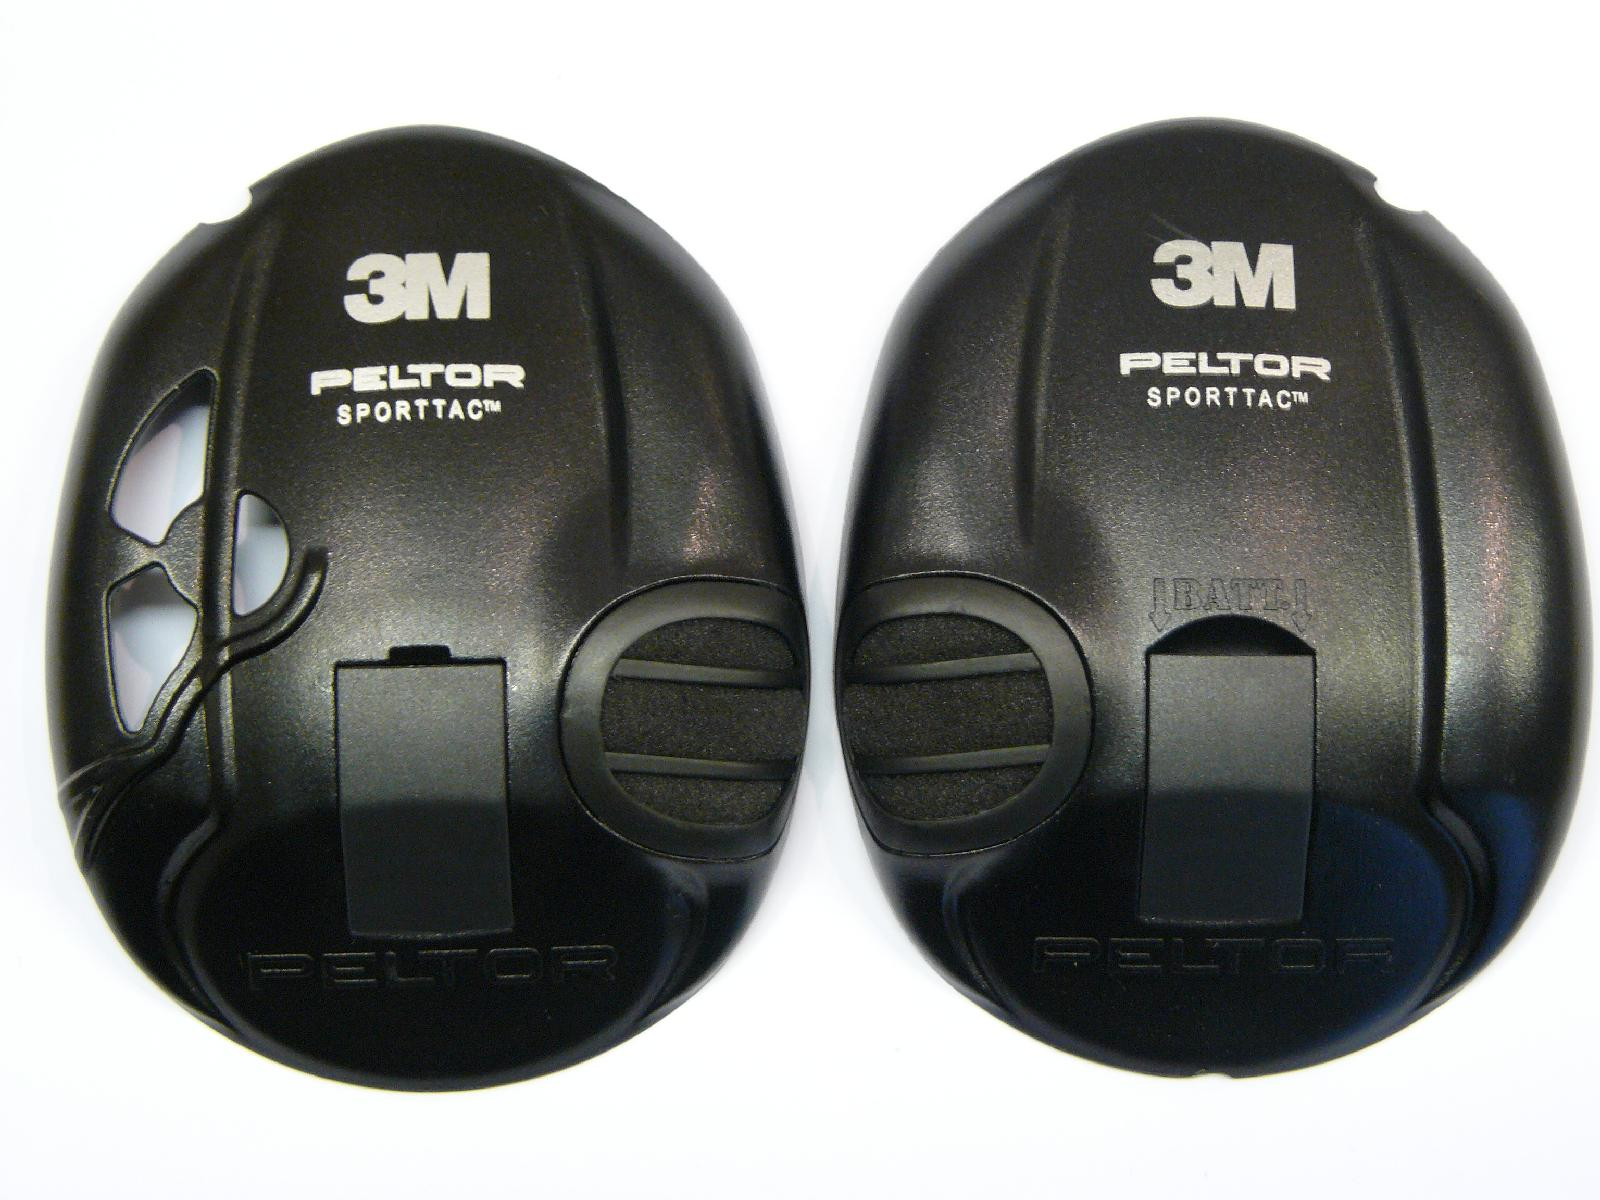 peltor sporttac spare replacement cup cover pairs